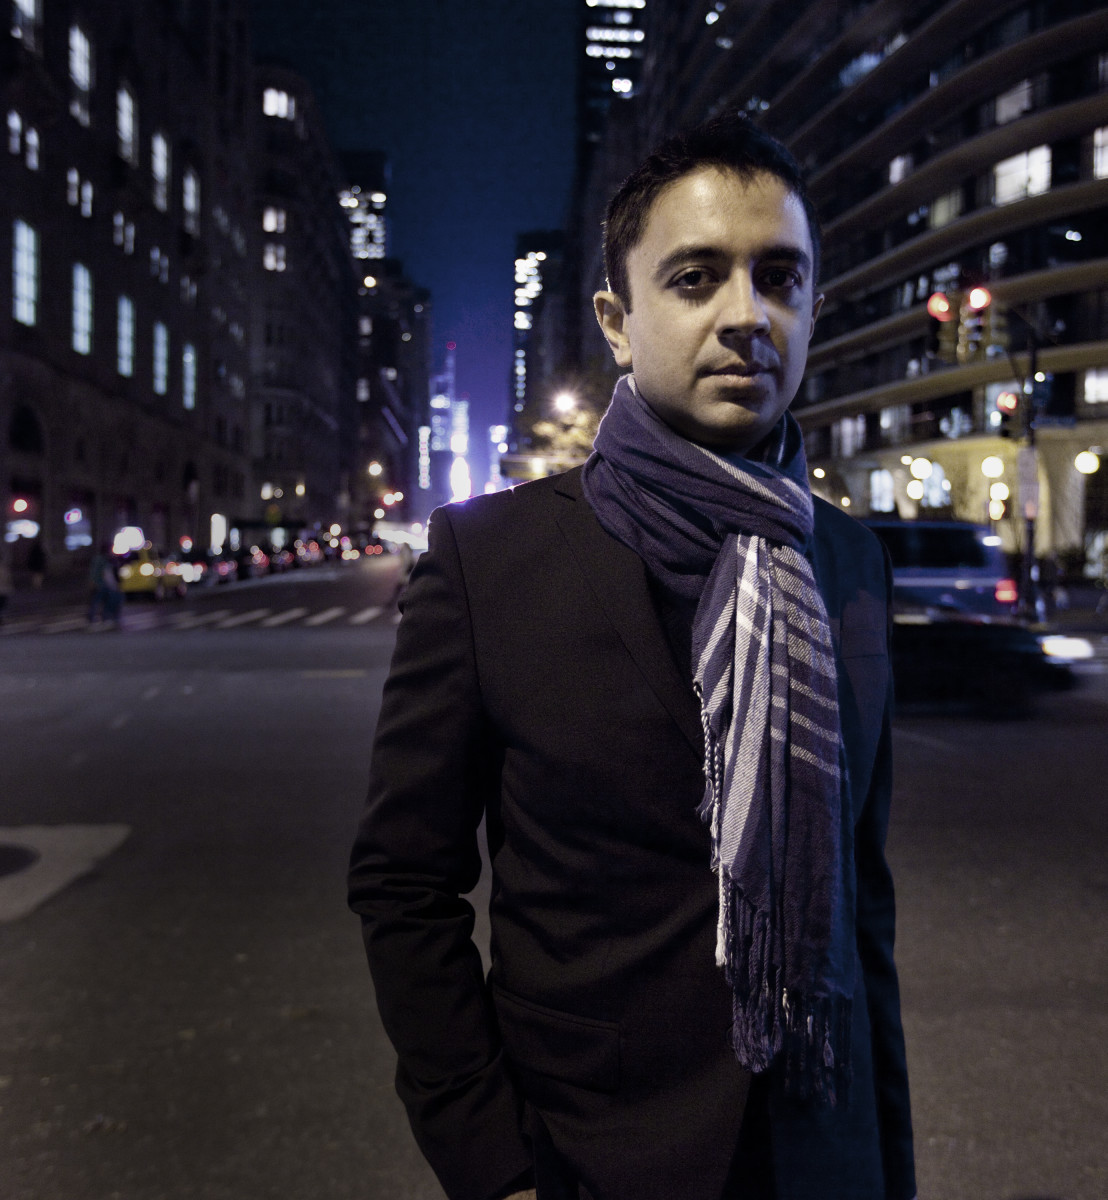 Musician and academic Vijay Iyer.